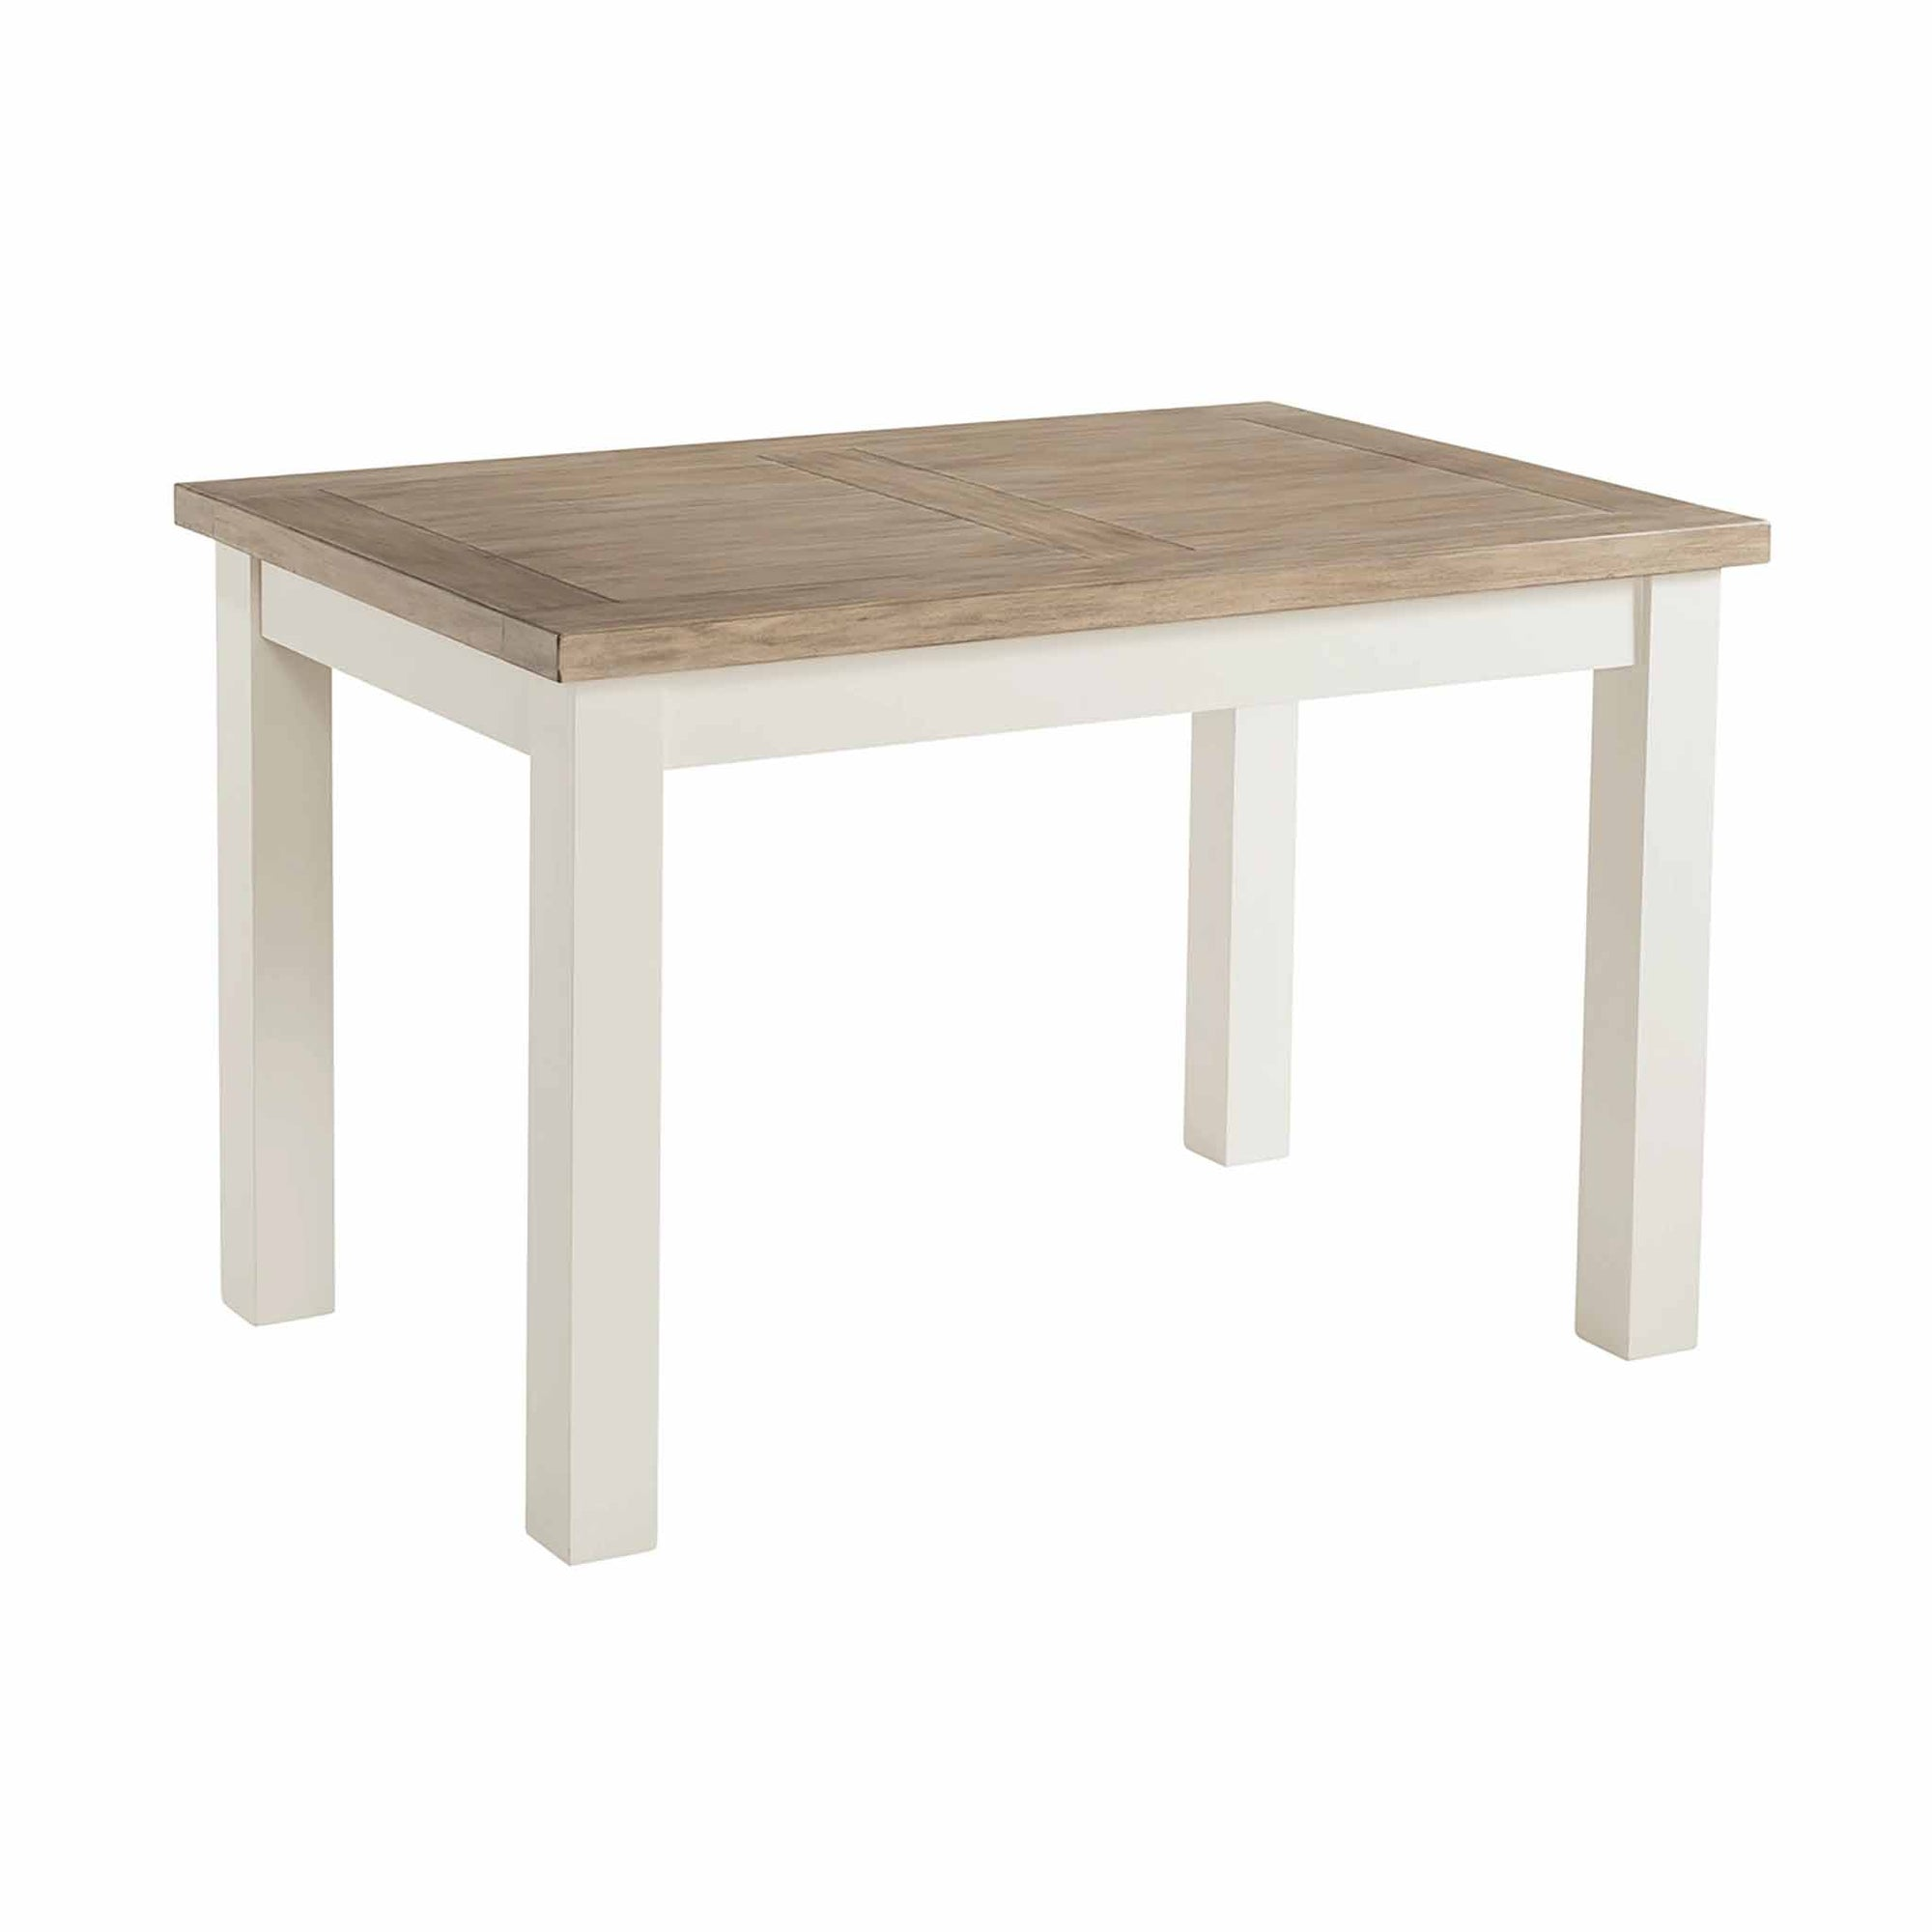 St Ives Painted 120cm Dining Table by Roseland Furniture